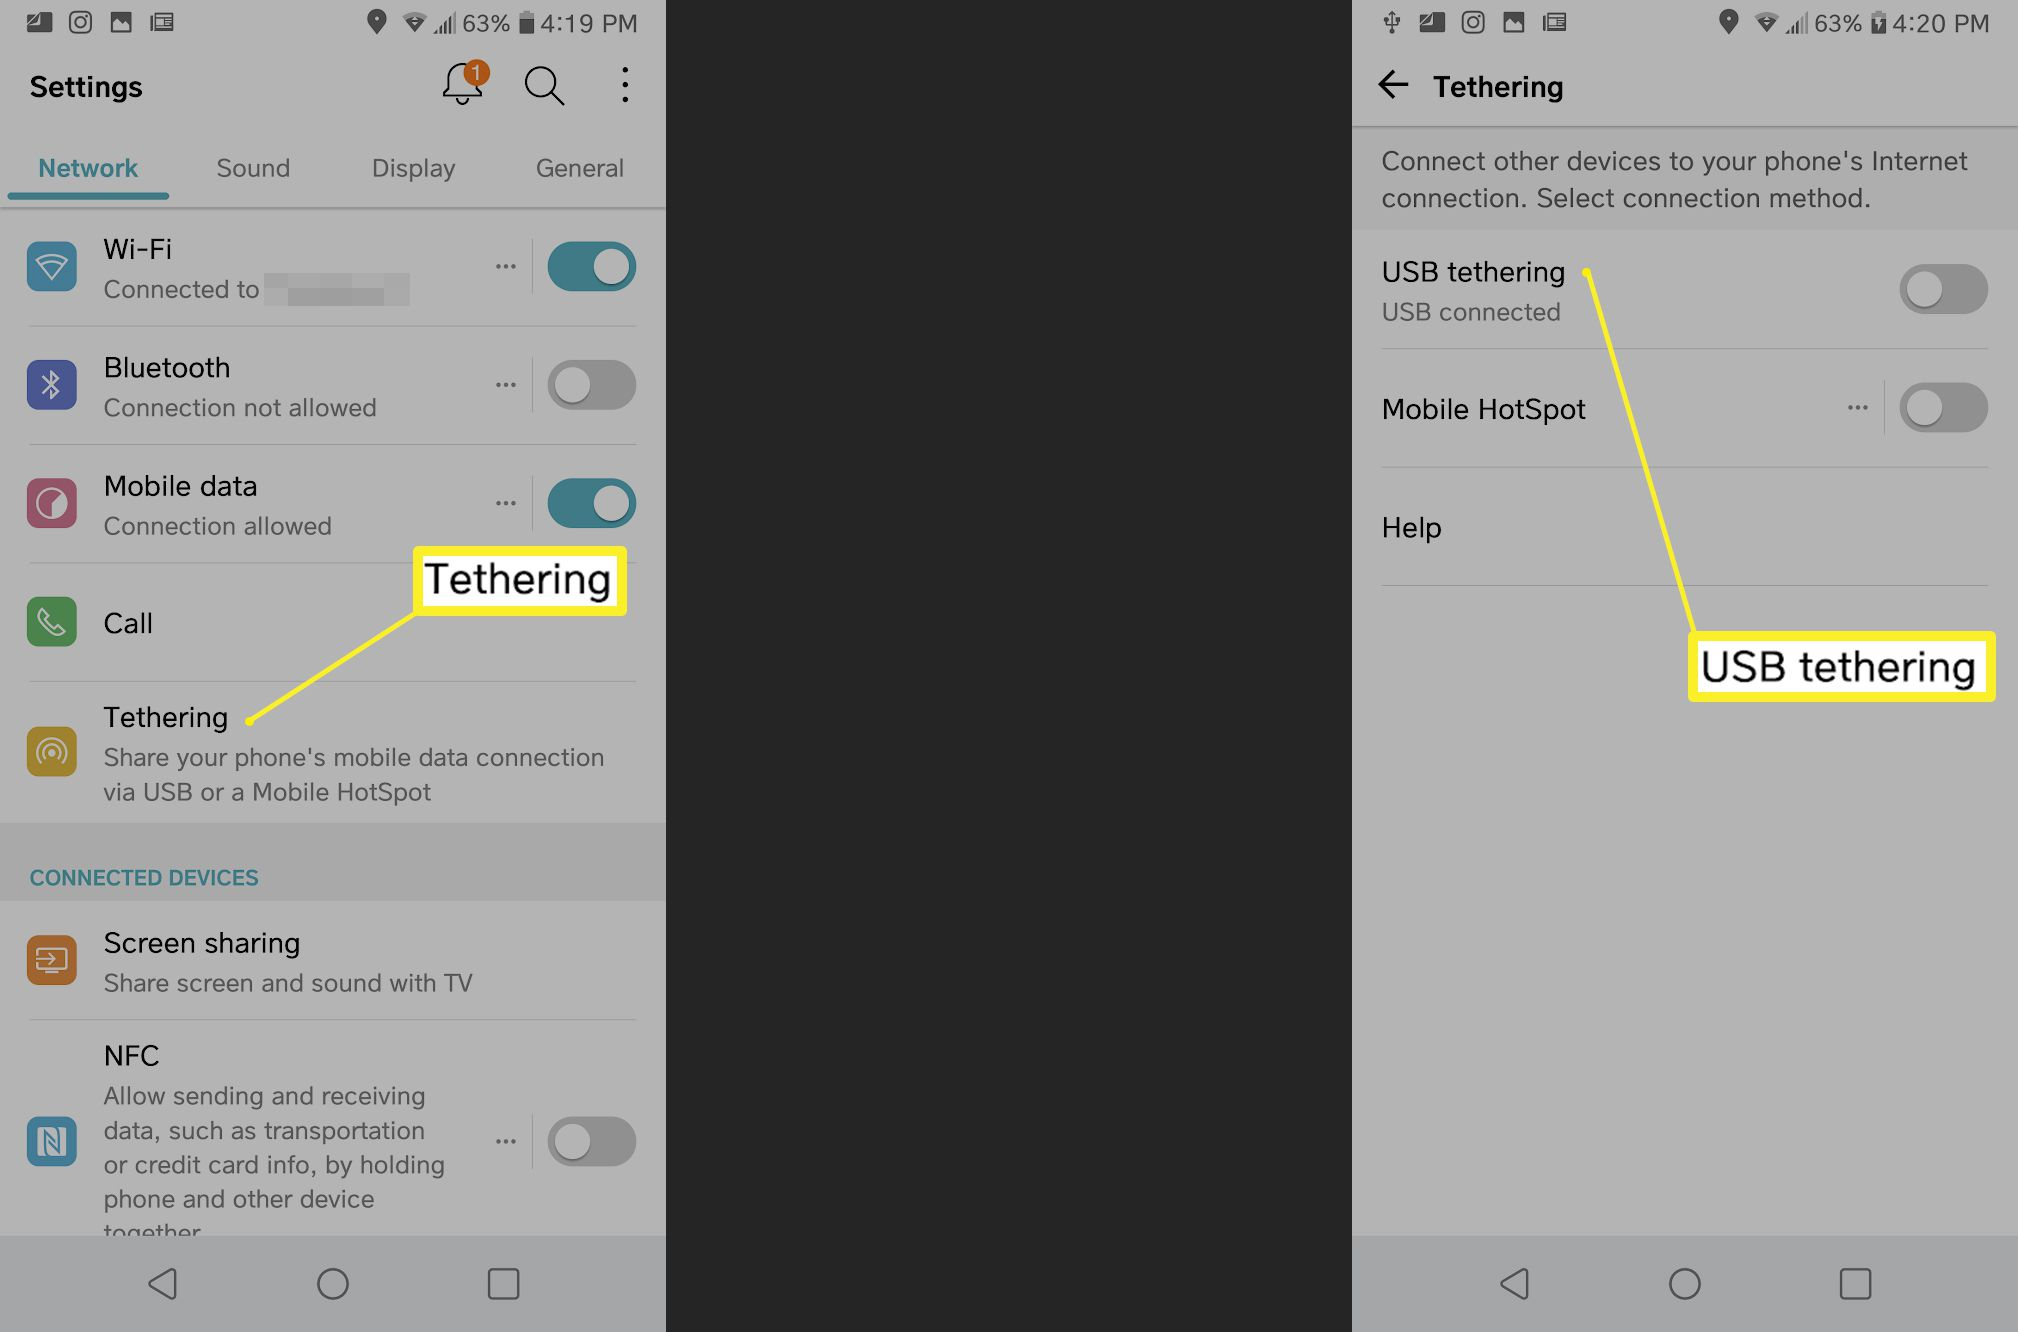 How To Set Up Usb Tethering On Windows 10